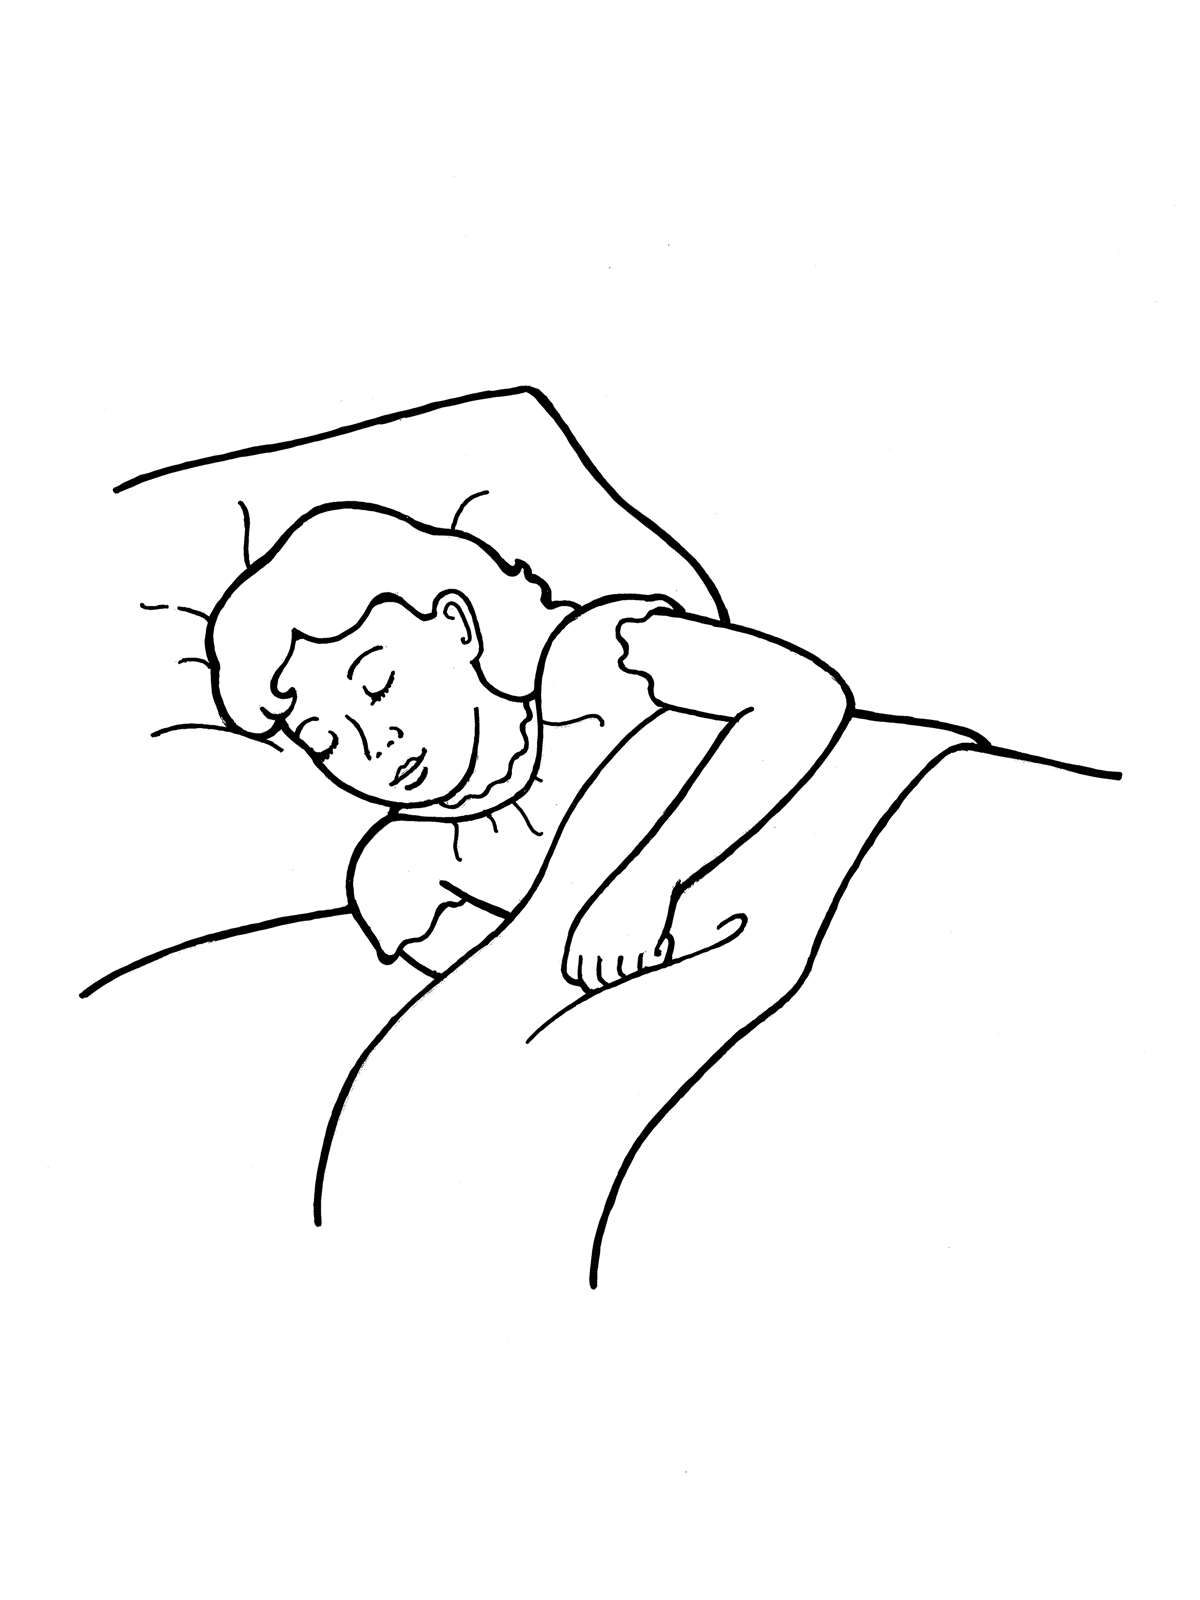 Girl Sleeping in BedNap Time Clip Art Black And White